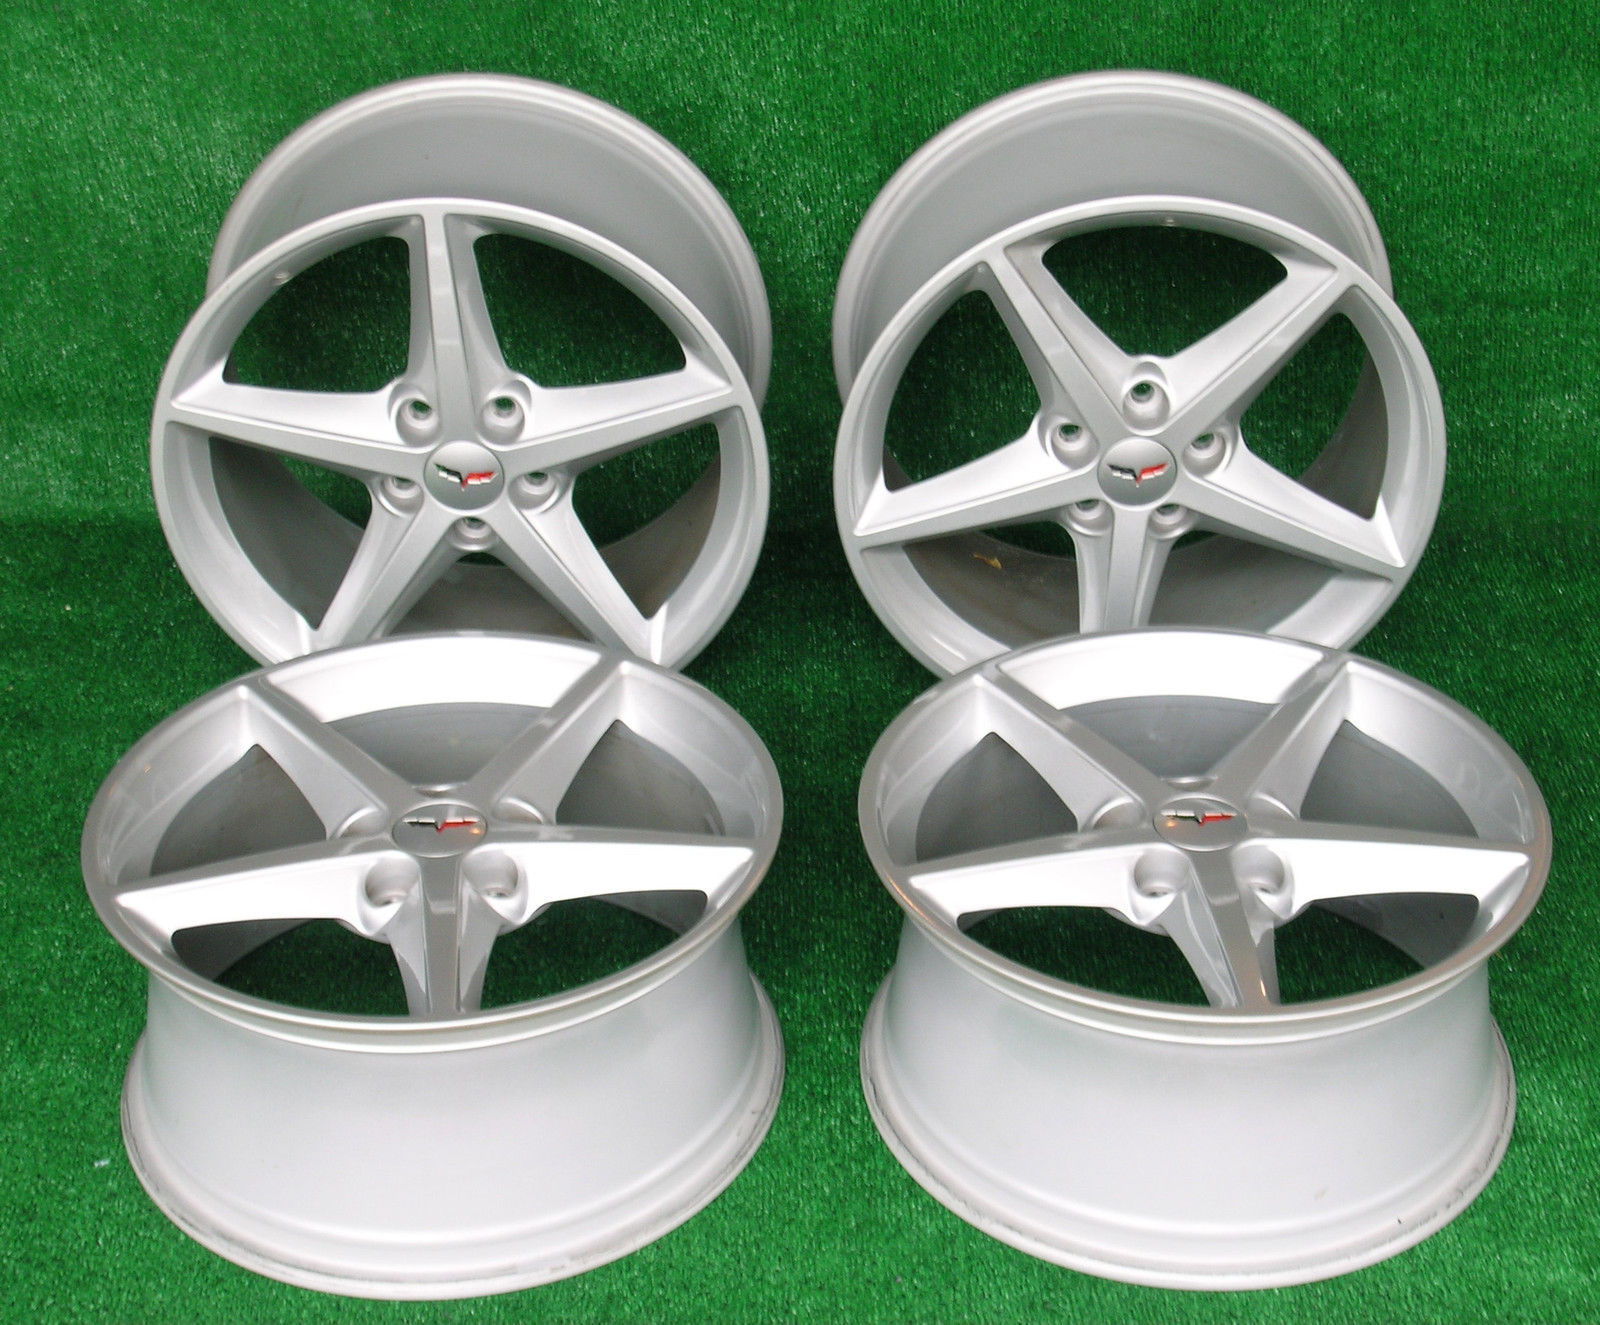 Primary image for 2013 Corvette Wheels 60th Anniversary Set of Four 2 Front and 2 Rear Great Shape